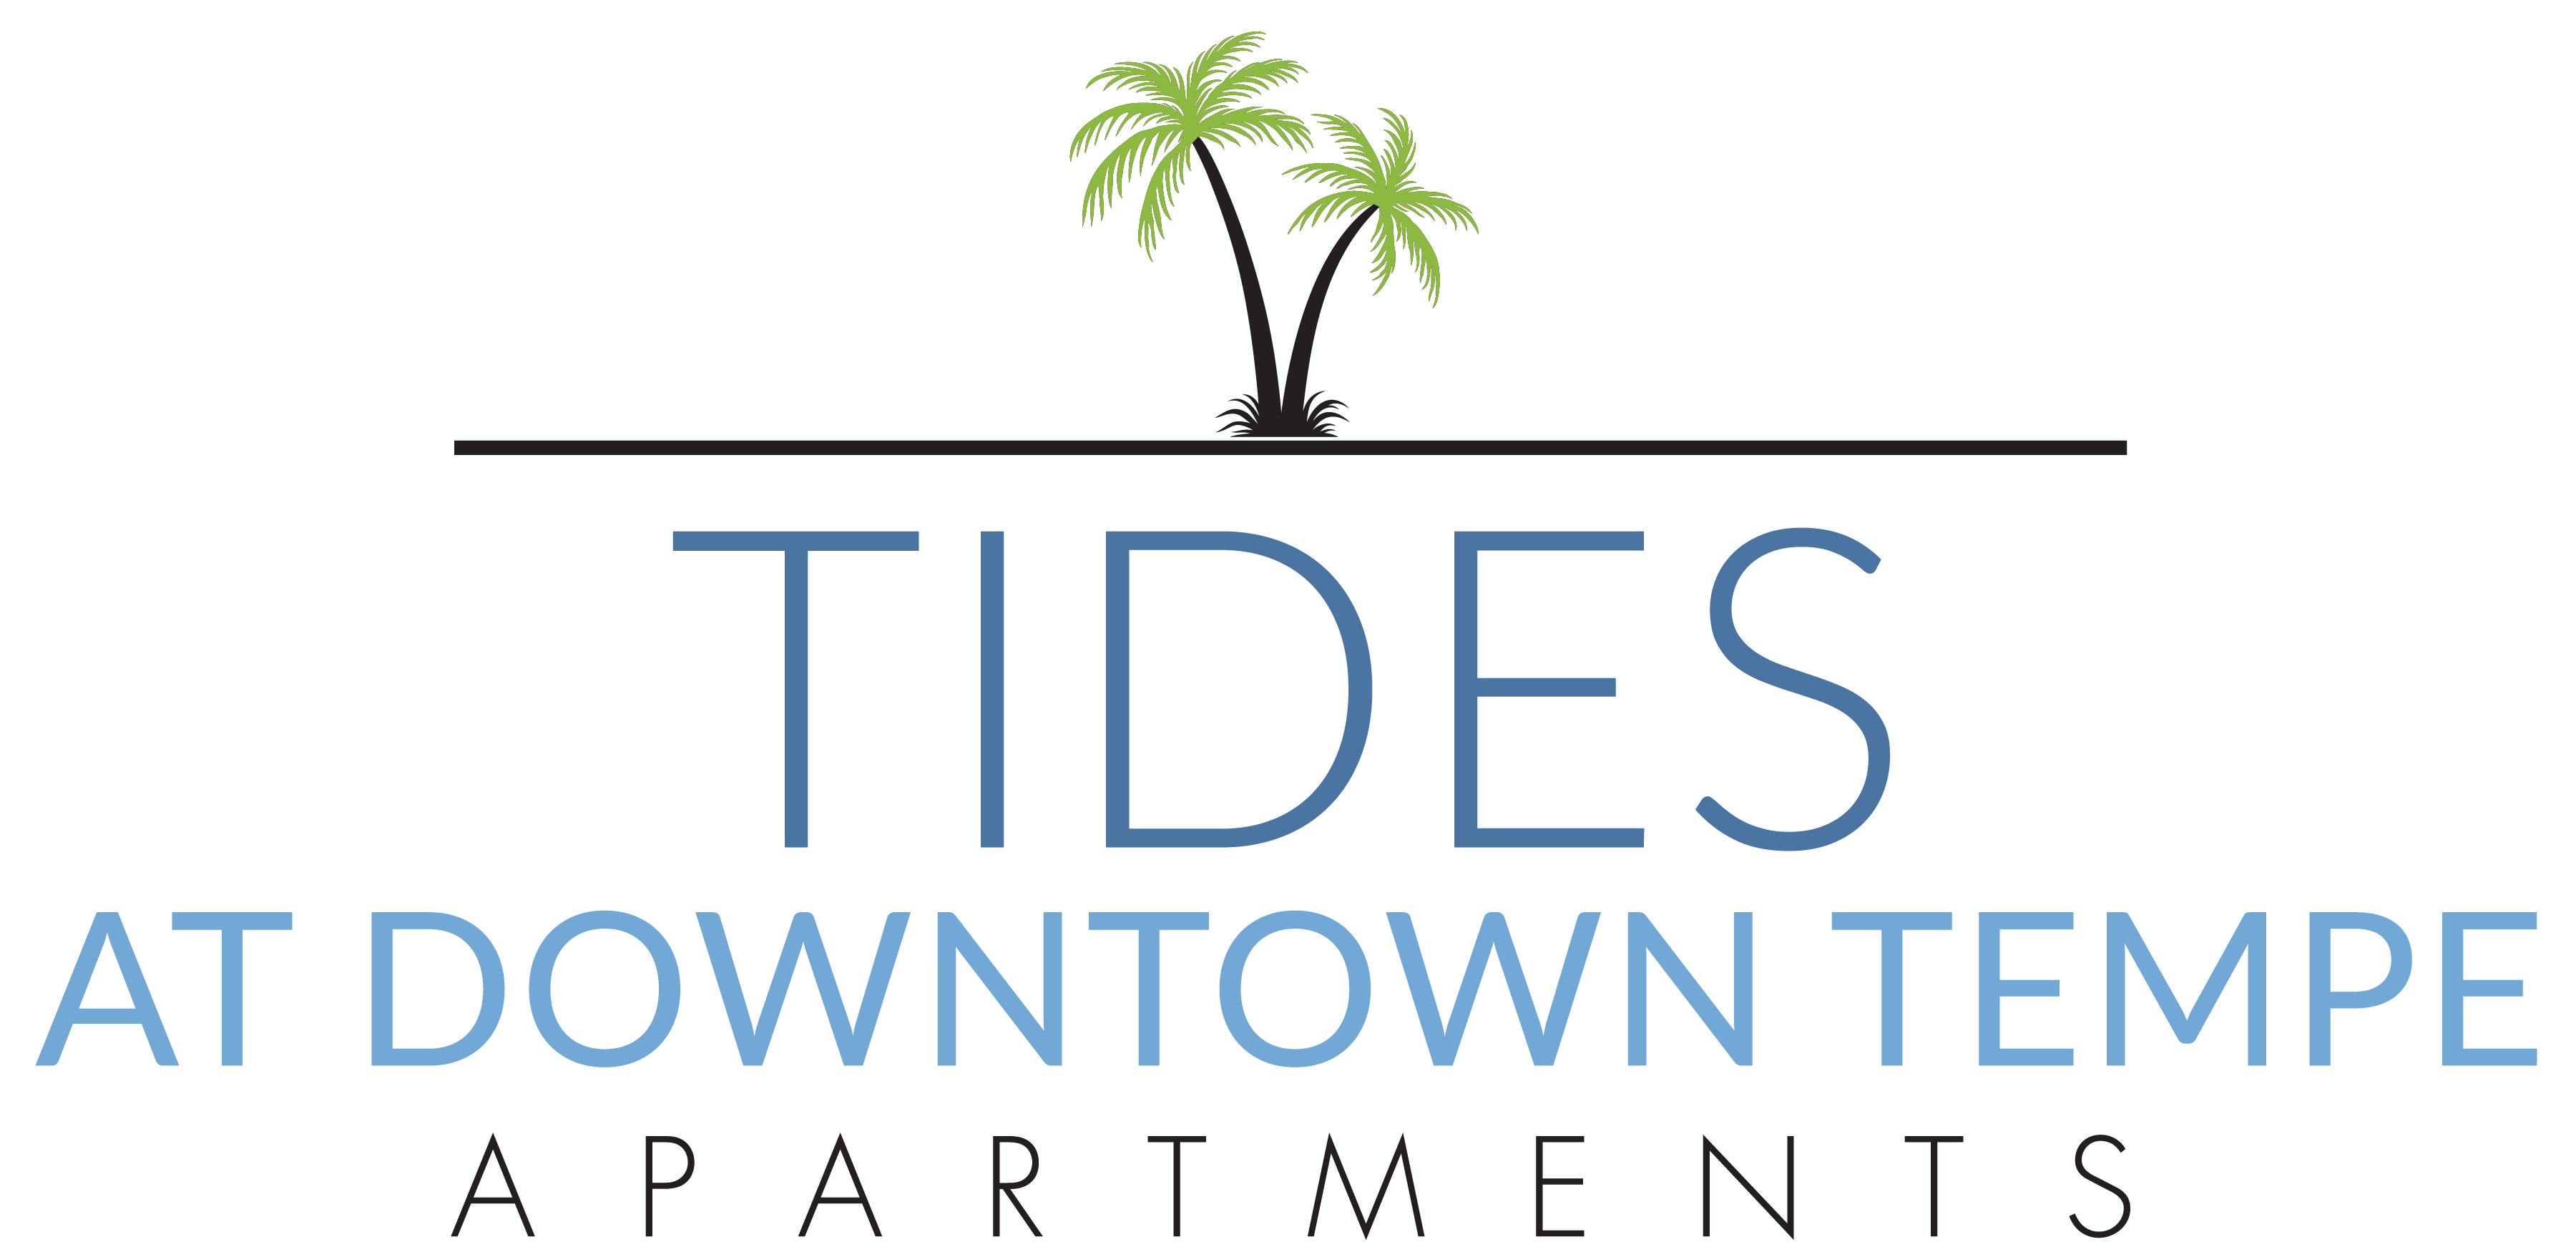 The Tides at Downtown Tempe Logo